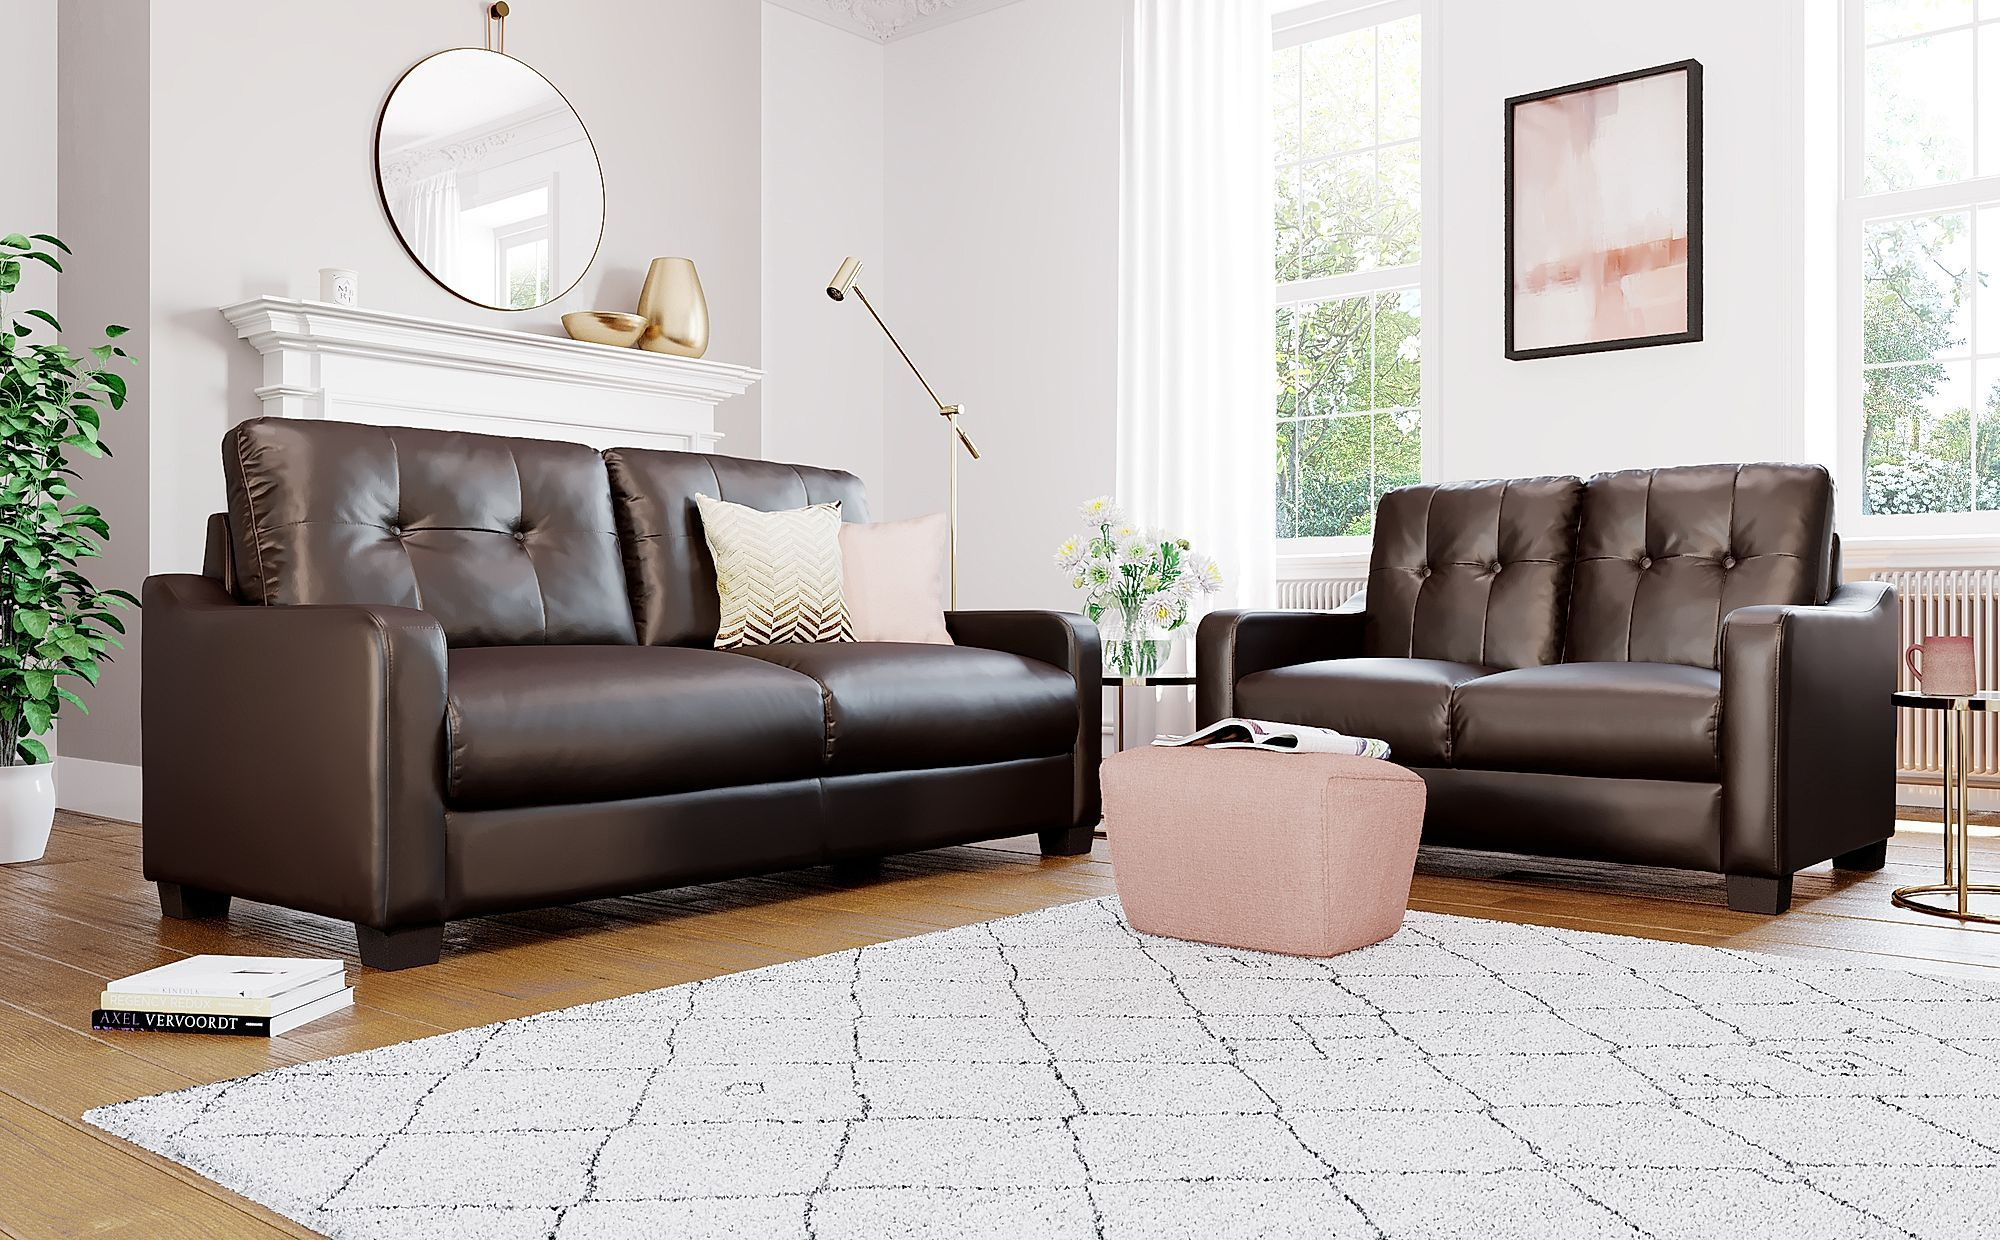 Belmont Brown Leather 3 2 Seater Sofa Set Grey Leather Sofa Sofa Set 2 Seater Sofa